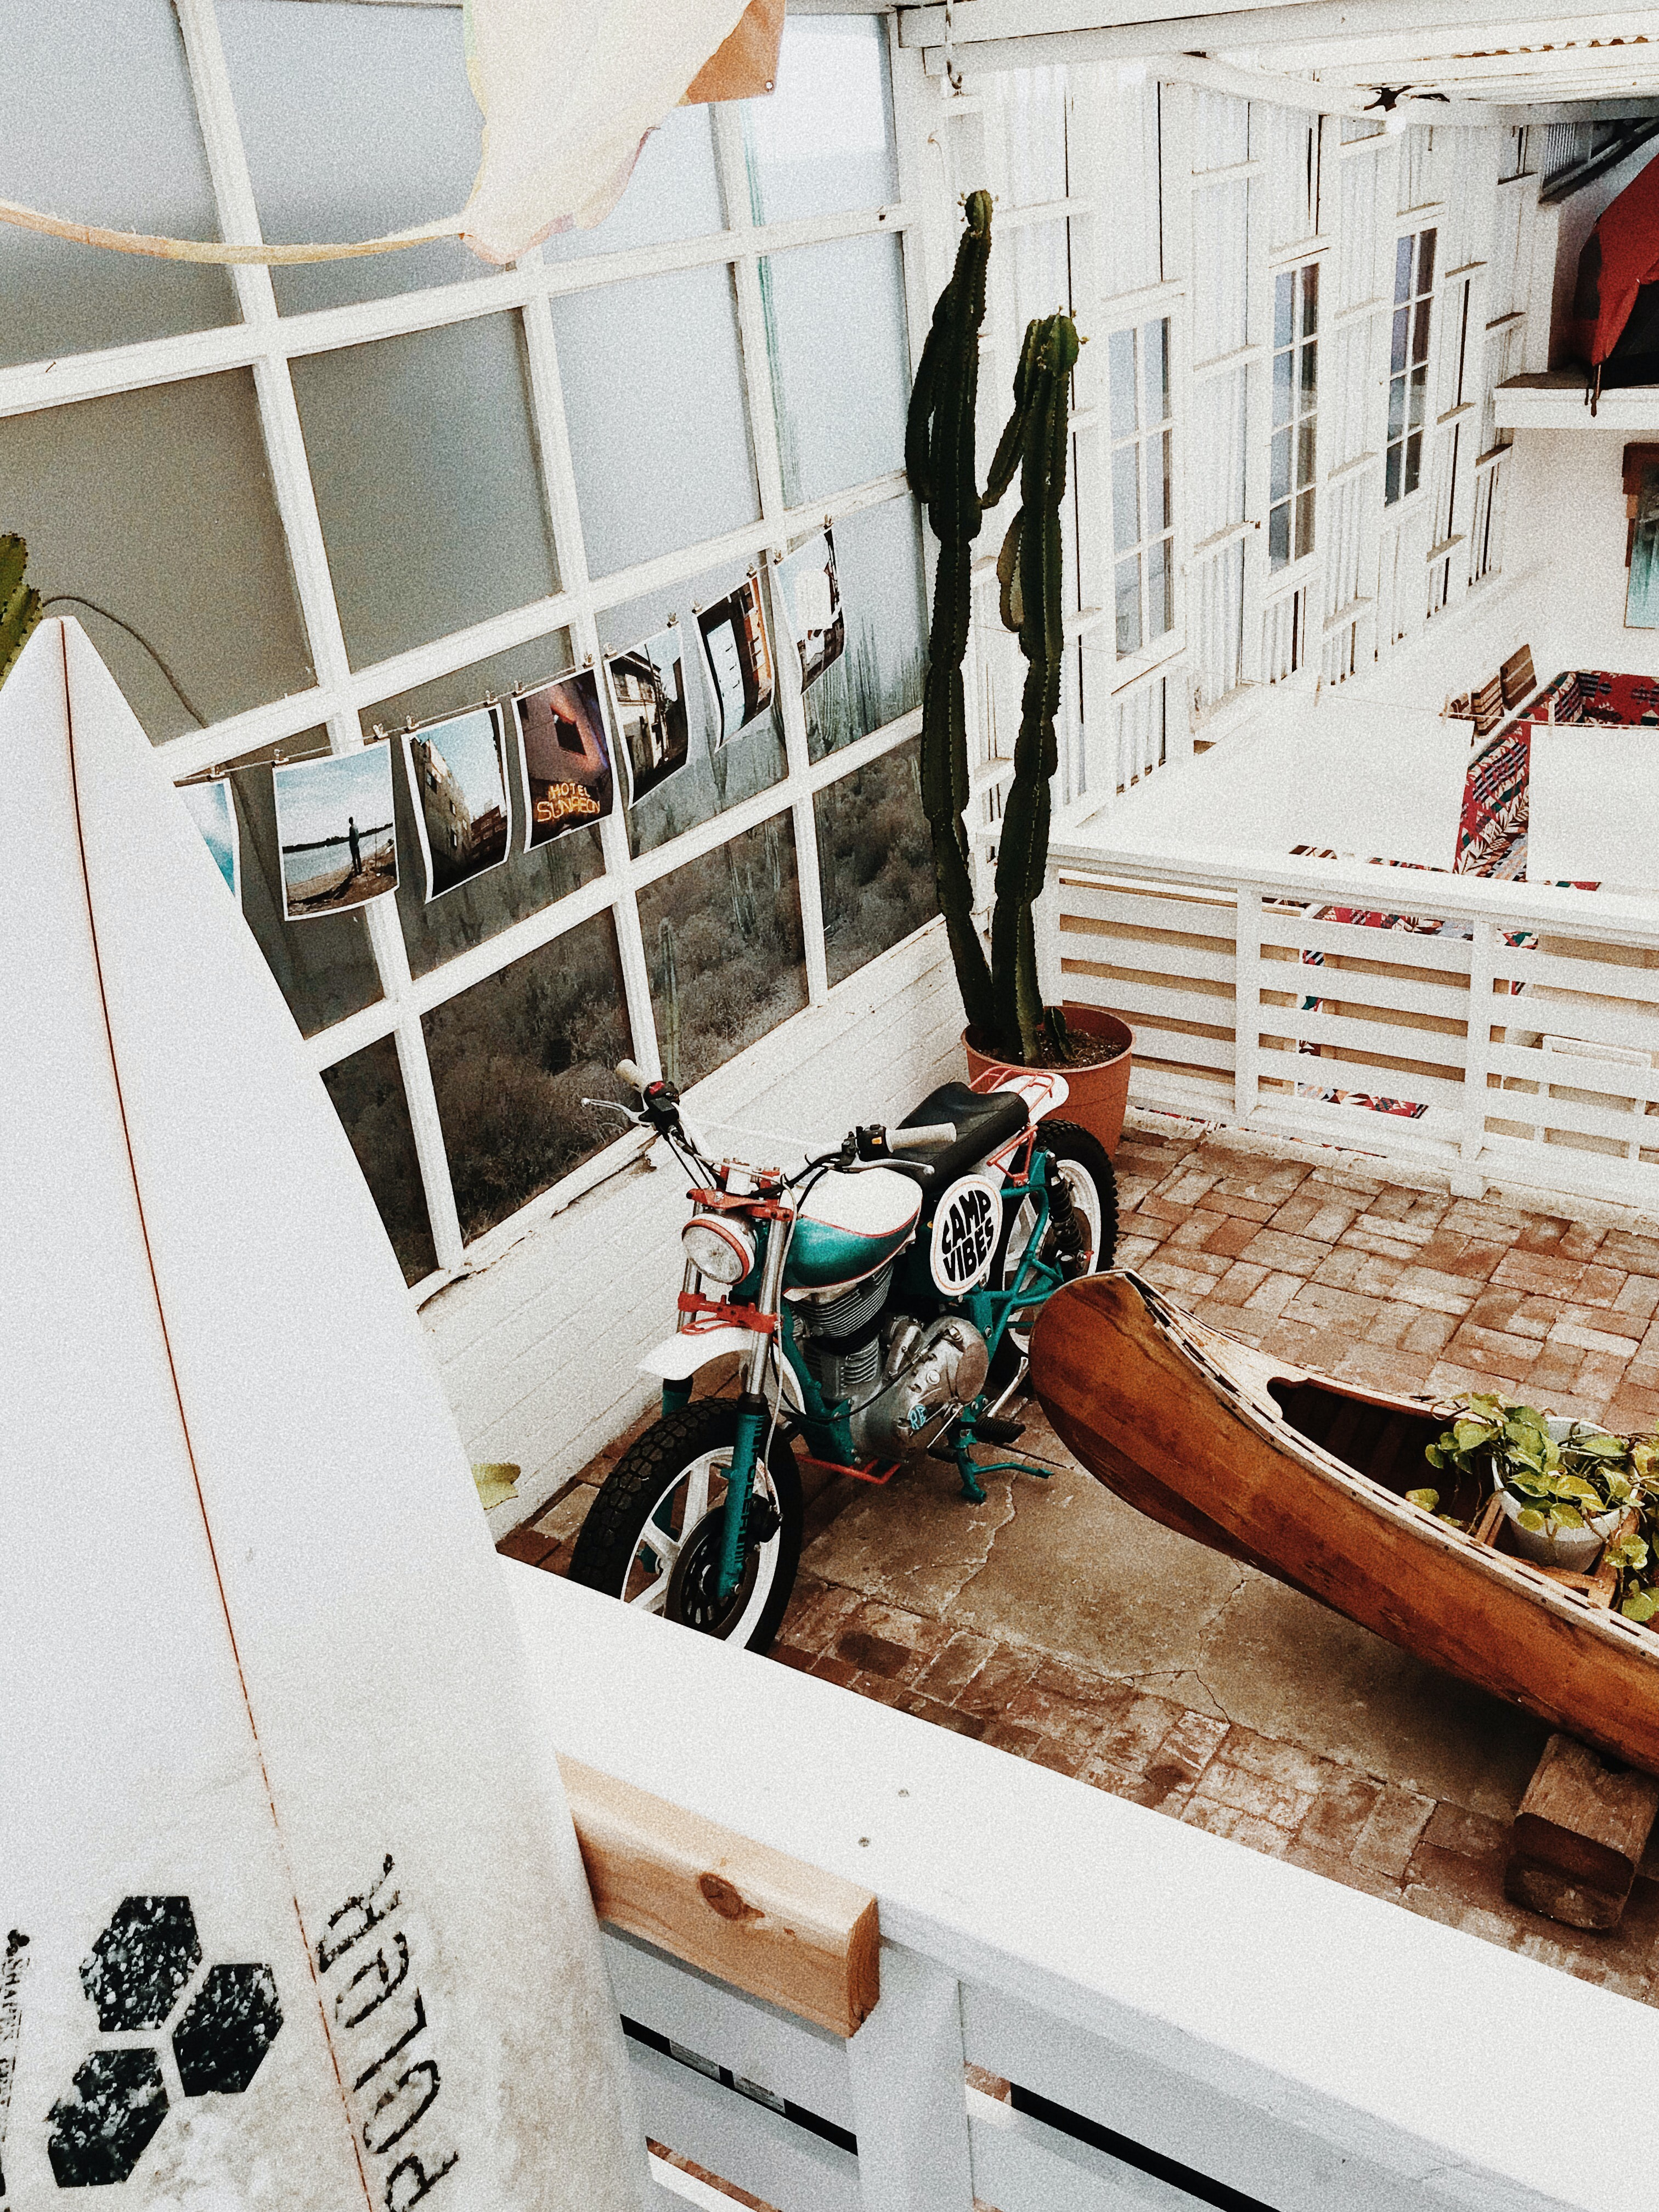 green motorcycle beside a brown wooden boat